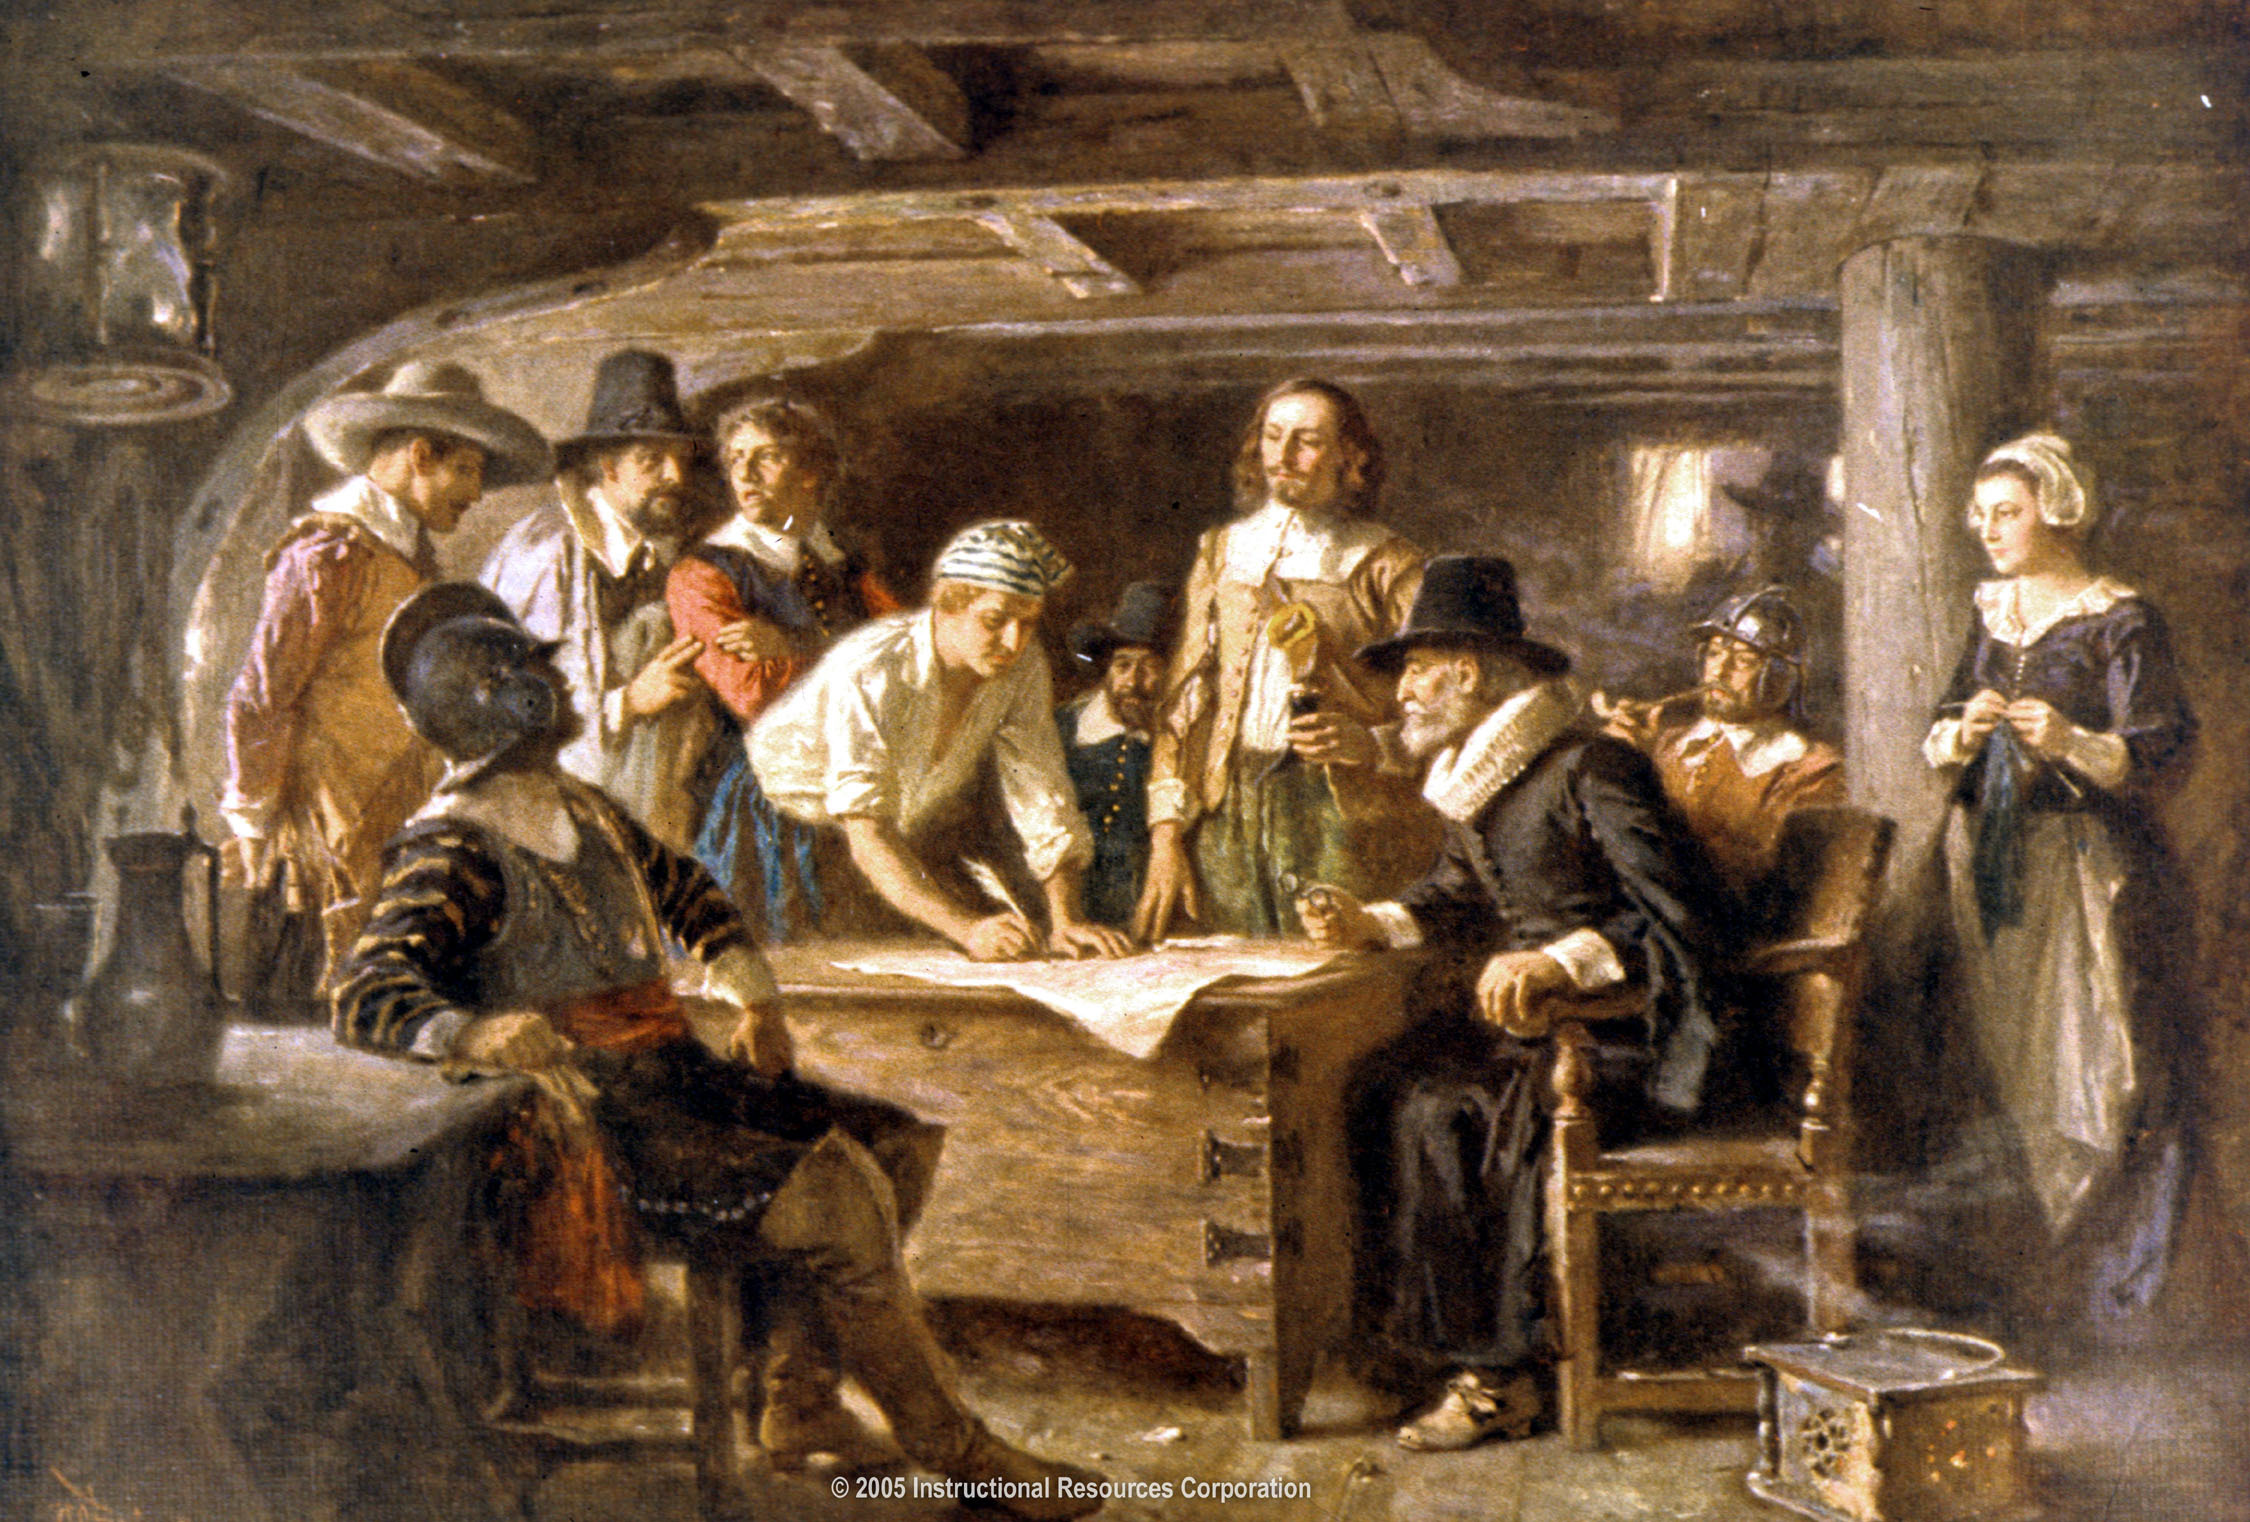 Plymouth Pilgrims Puritans The Great Migration